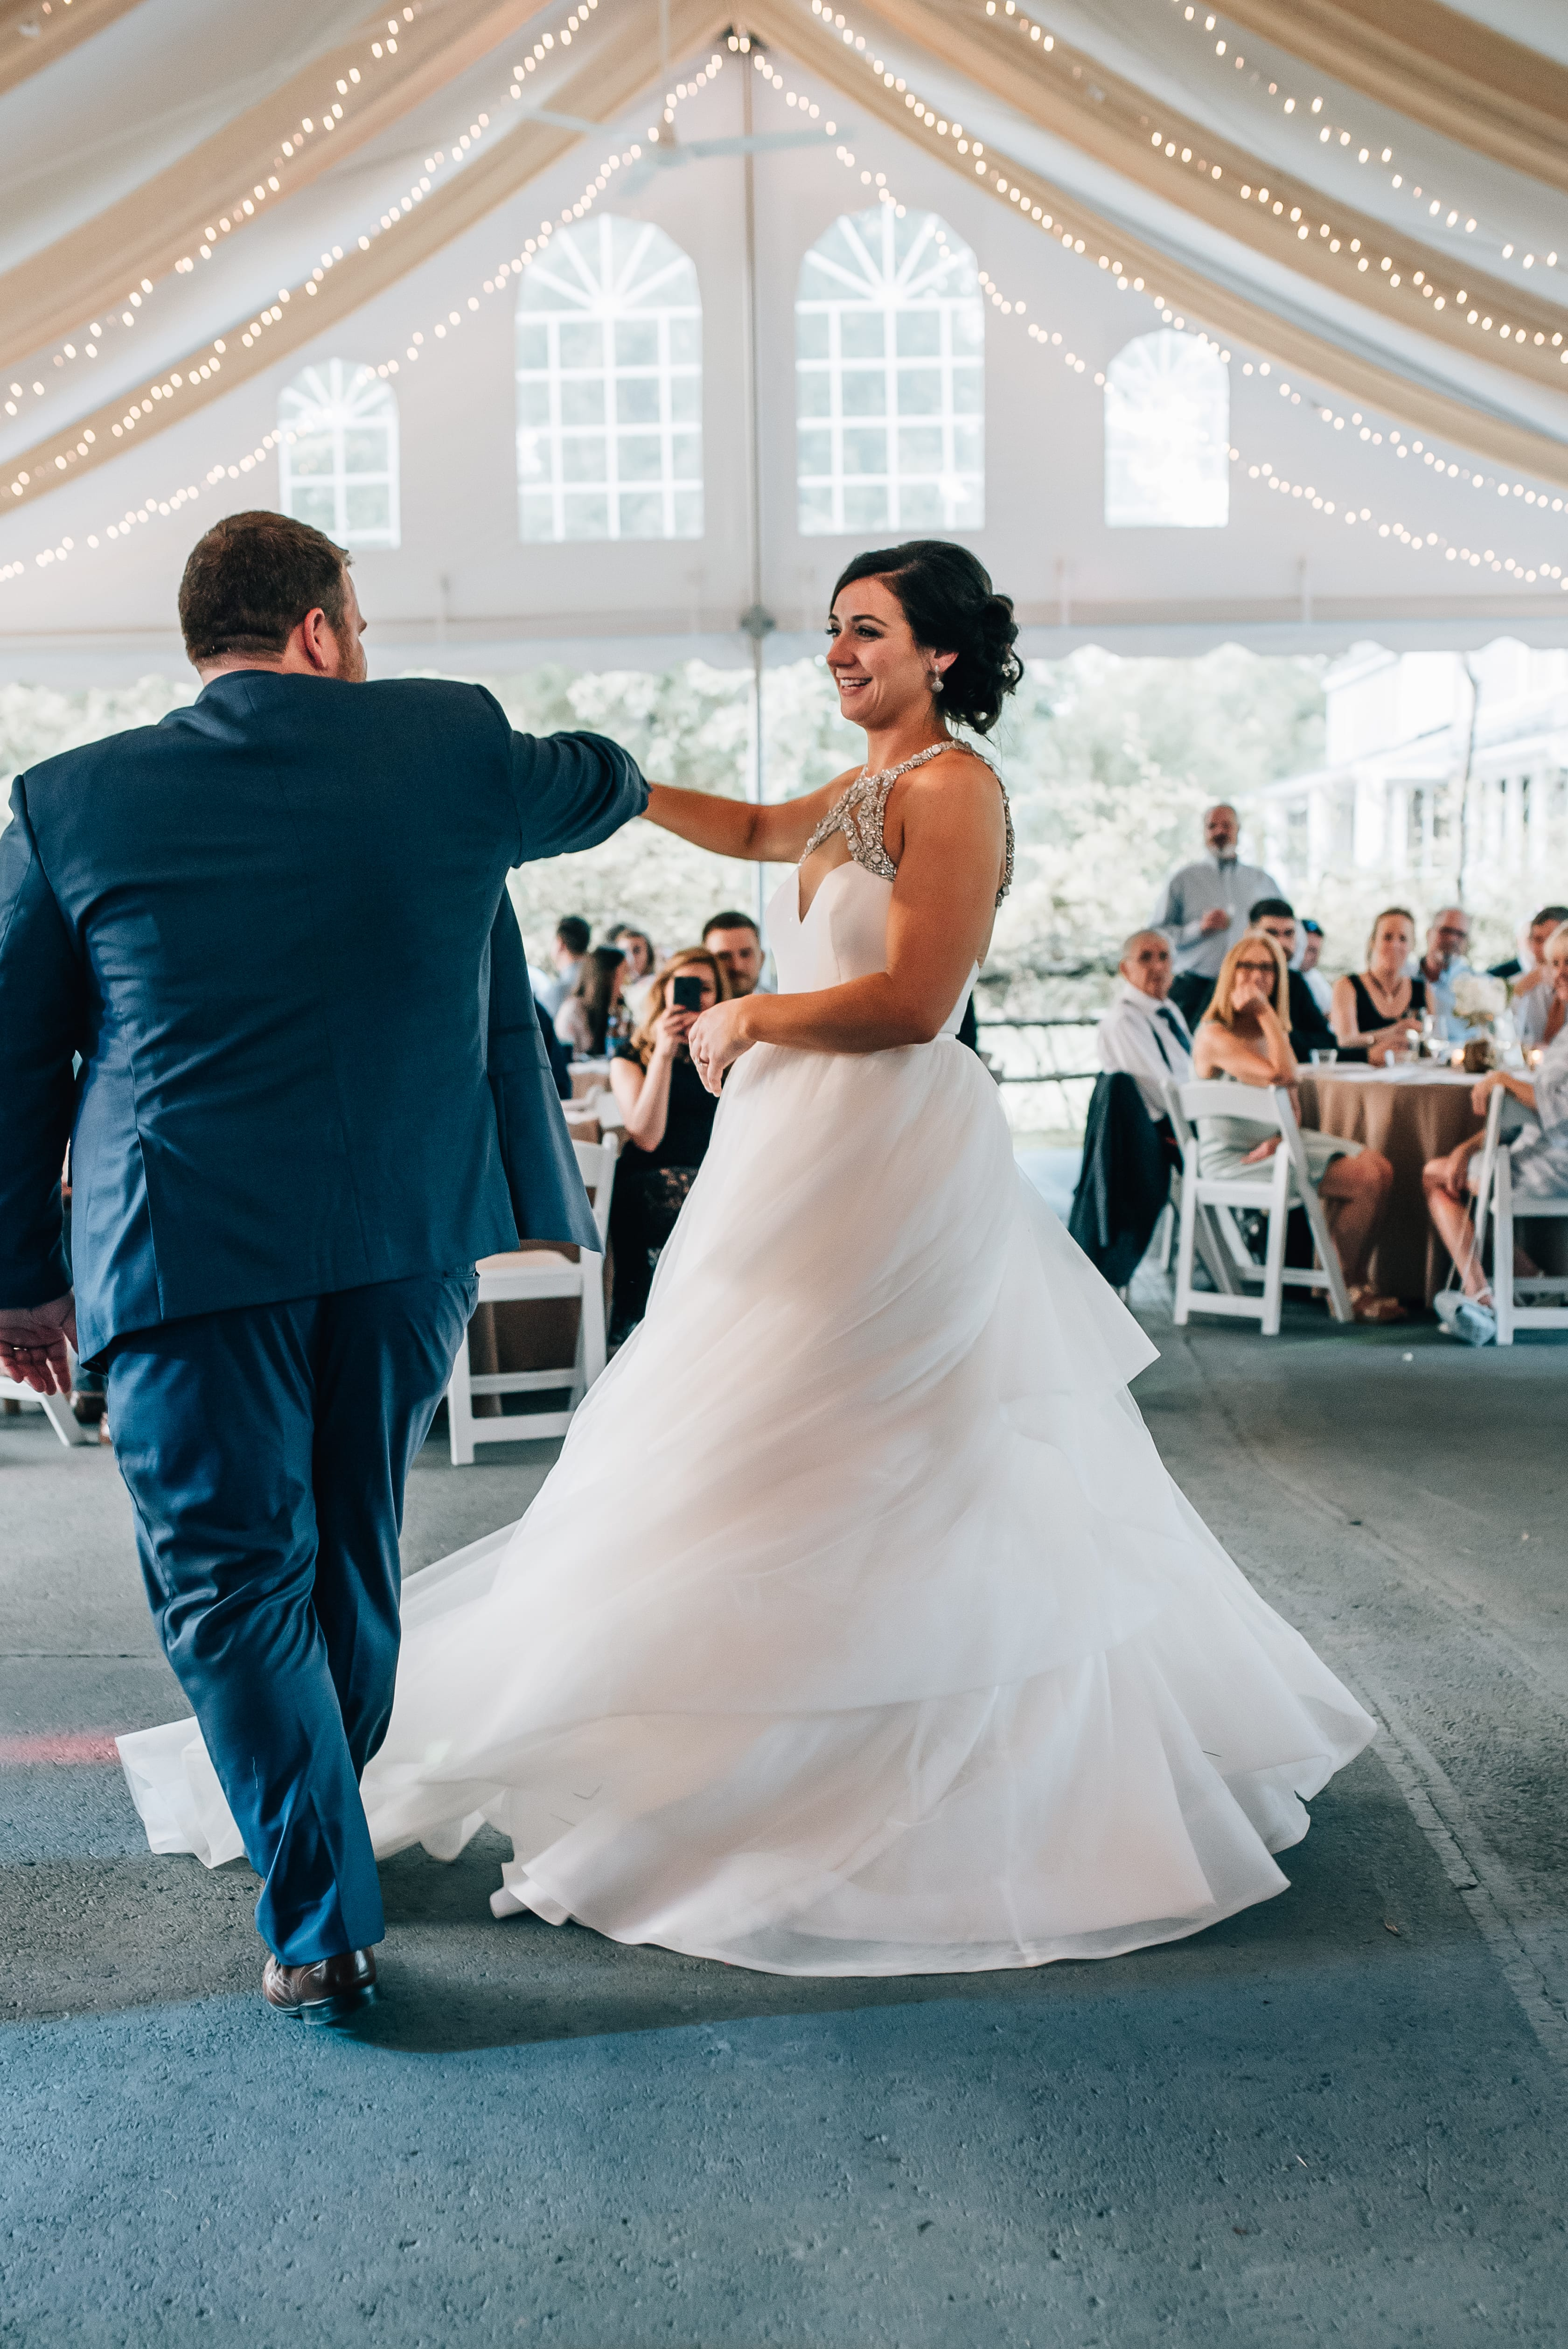 Groom spins his bride during their first dance at a sweet summer wedding designed by Magnificent Moments Weddings at The Ivy Place